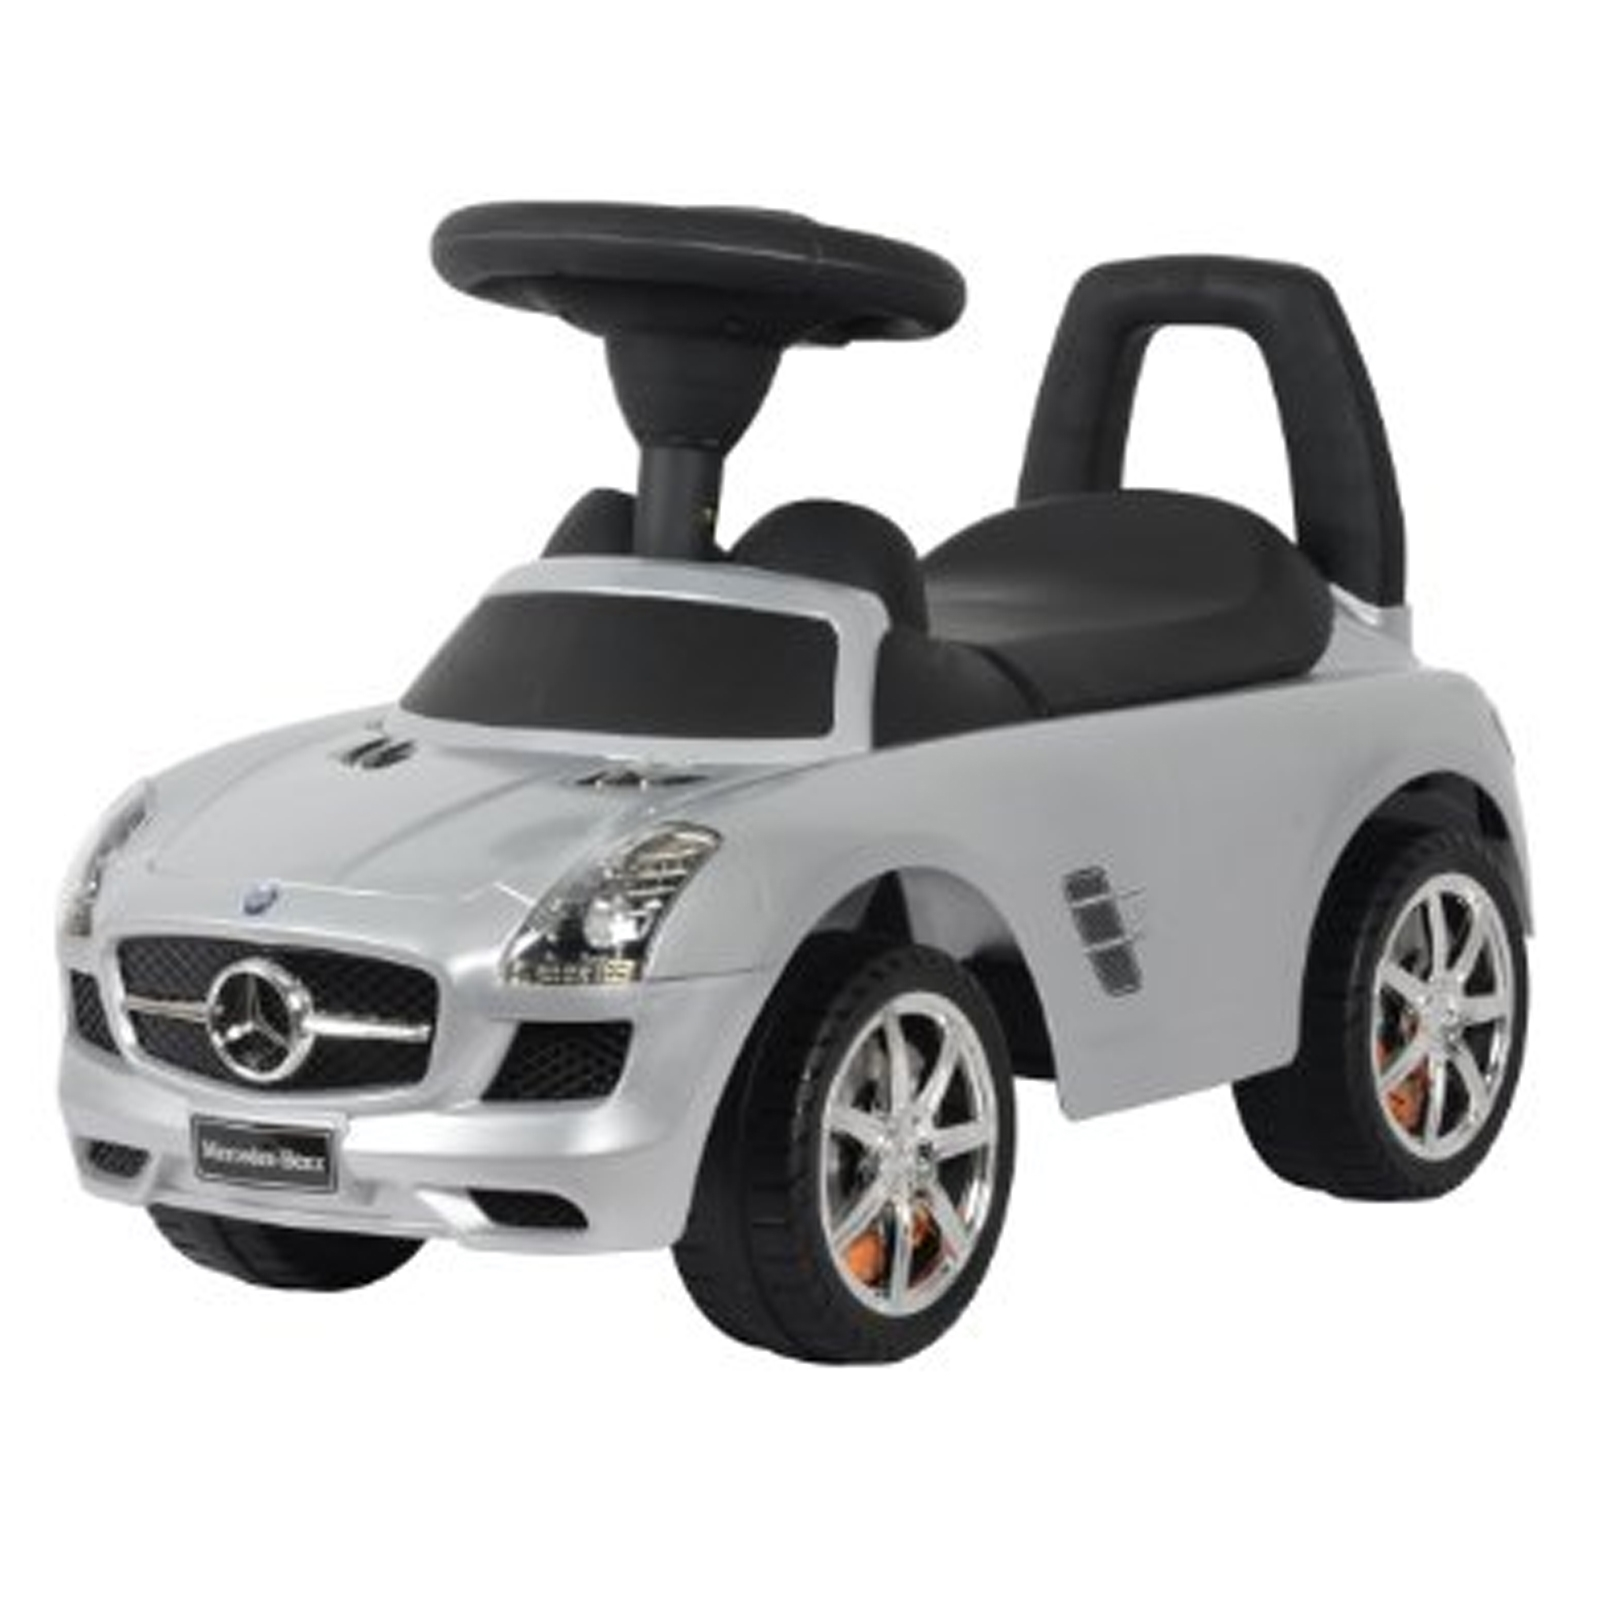 Licensed Mercedes Benz Kids Ride On Push Car in Silver